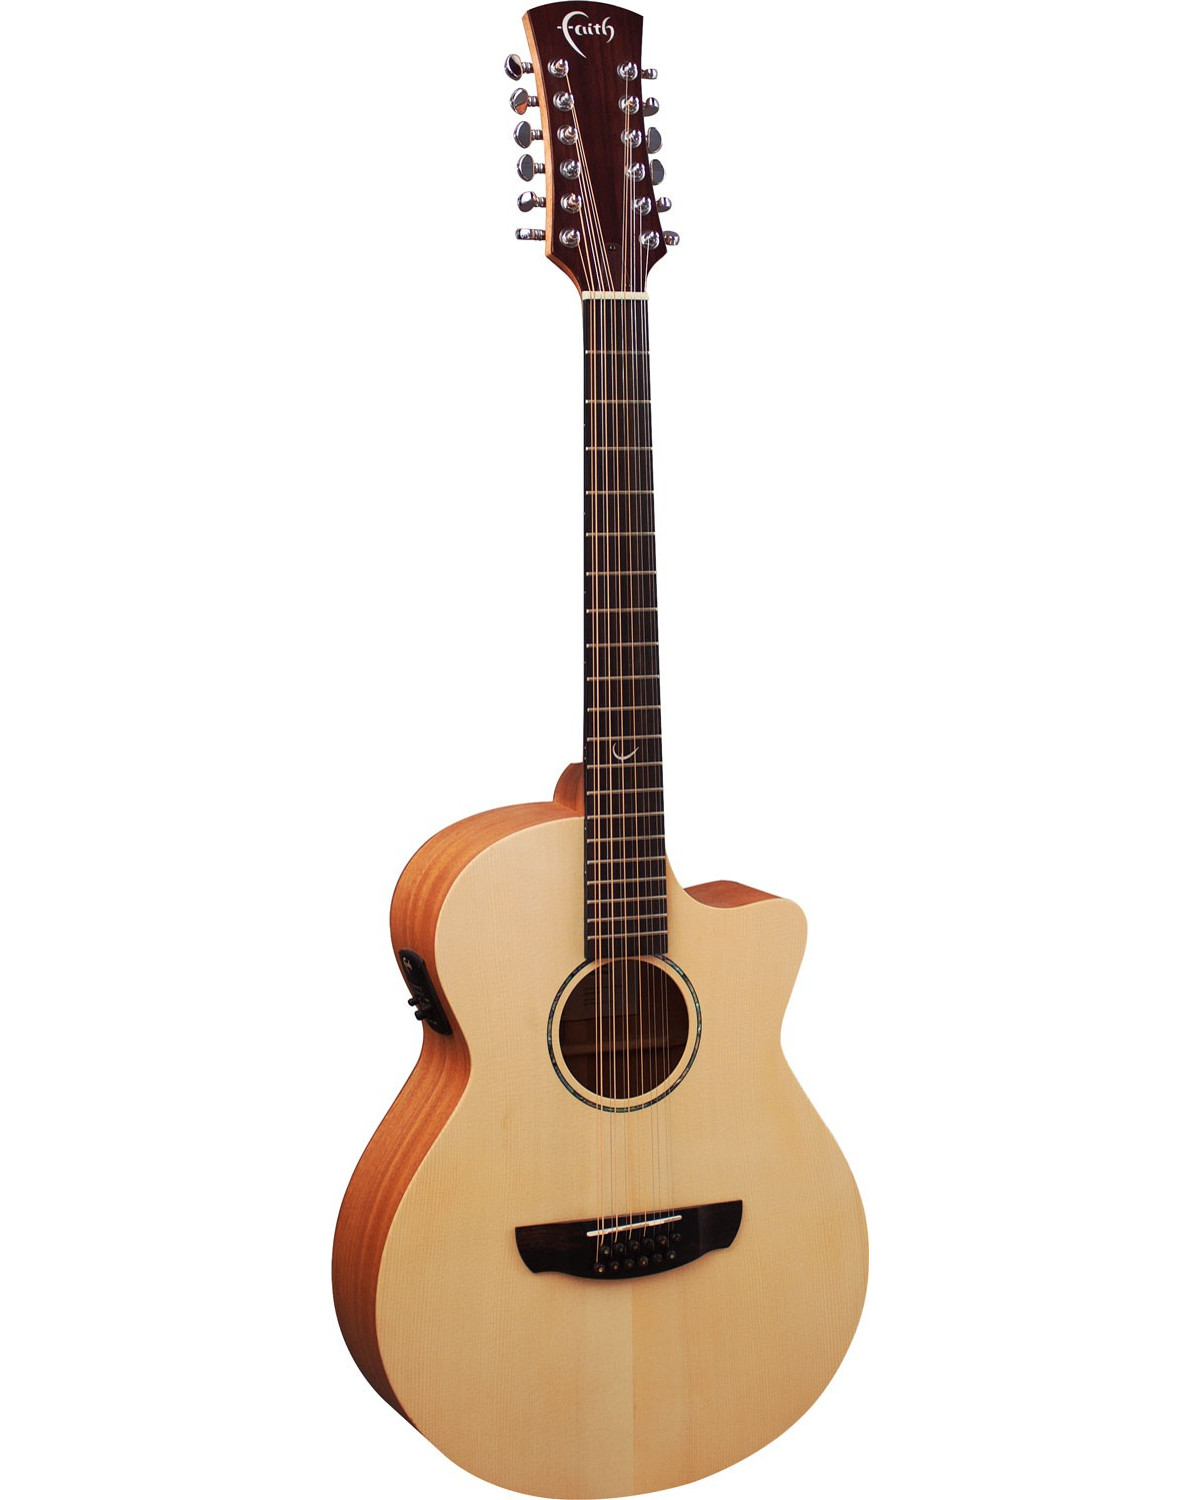 Faith Naked Venus 12 String Electro Acoustic Guitar